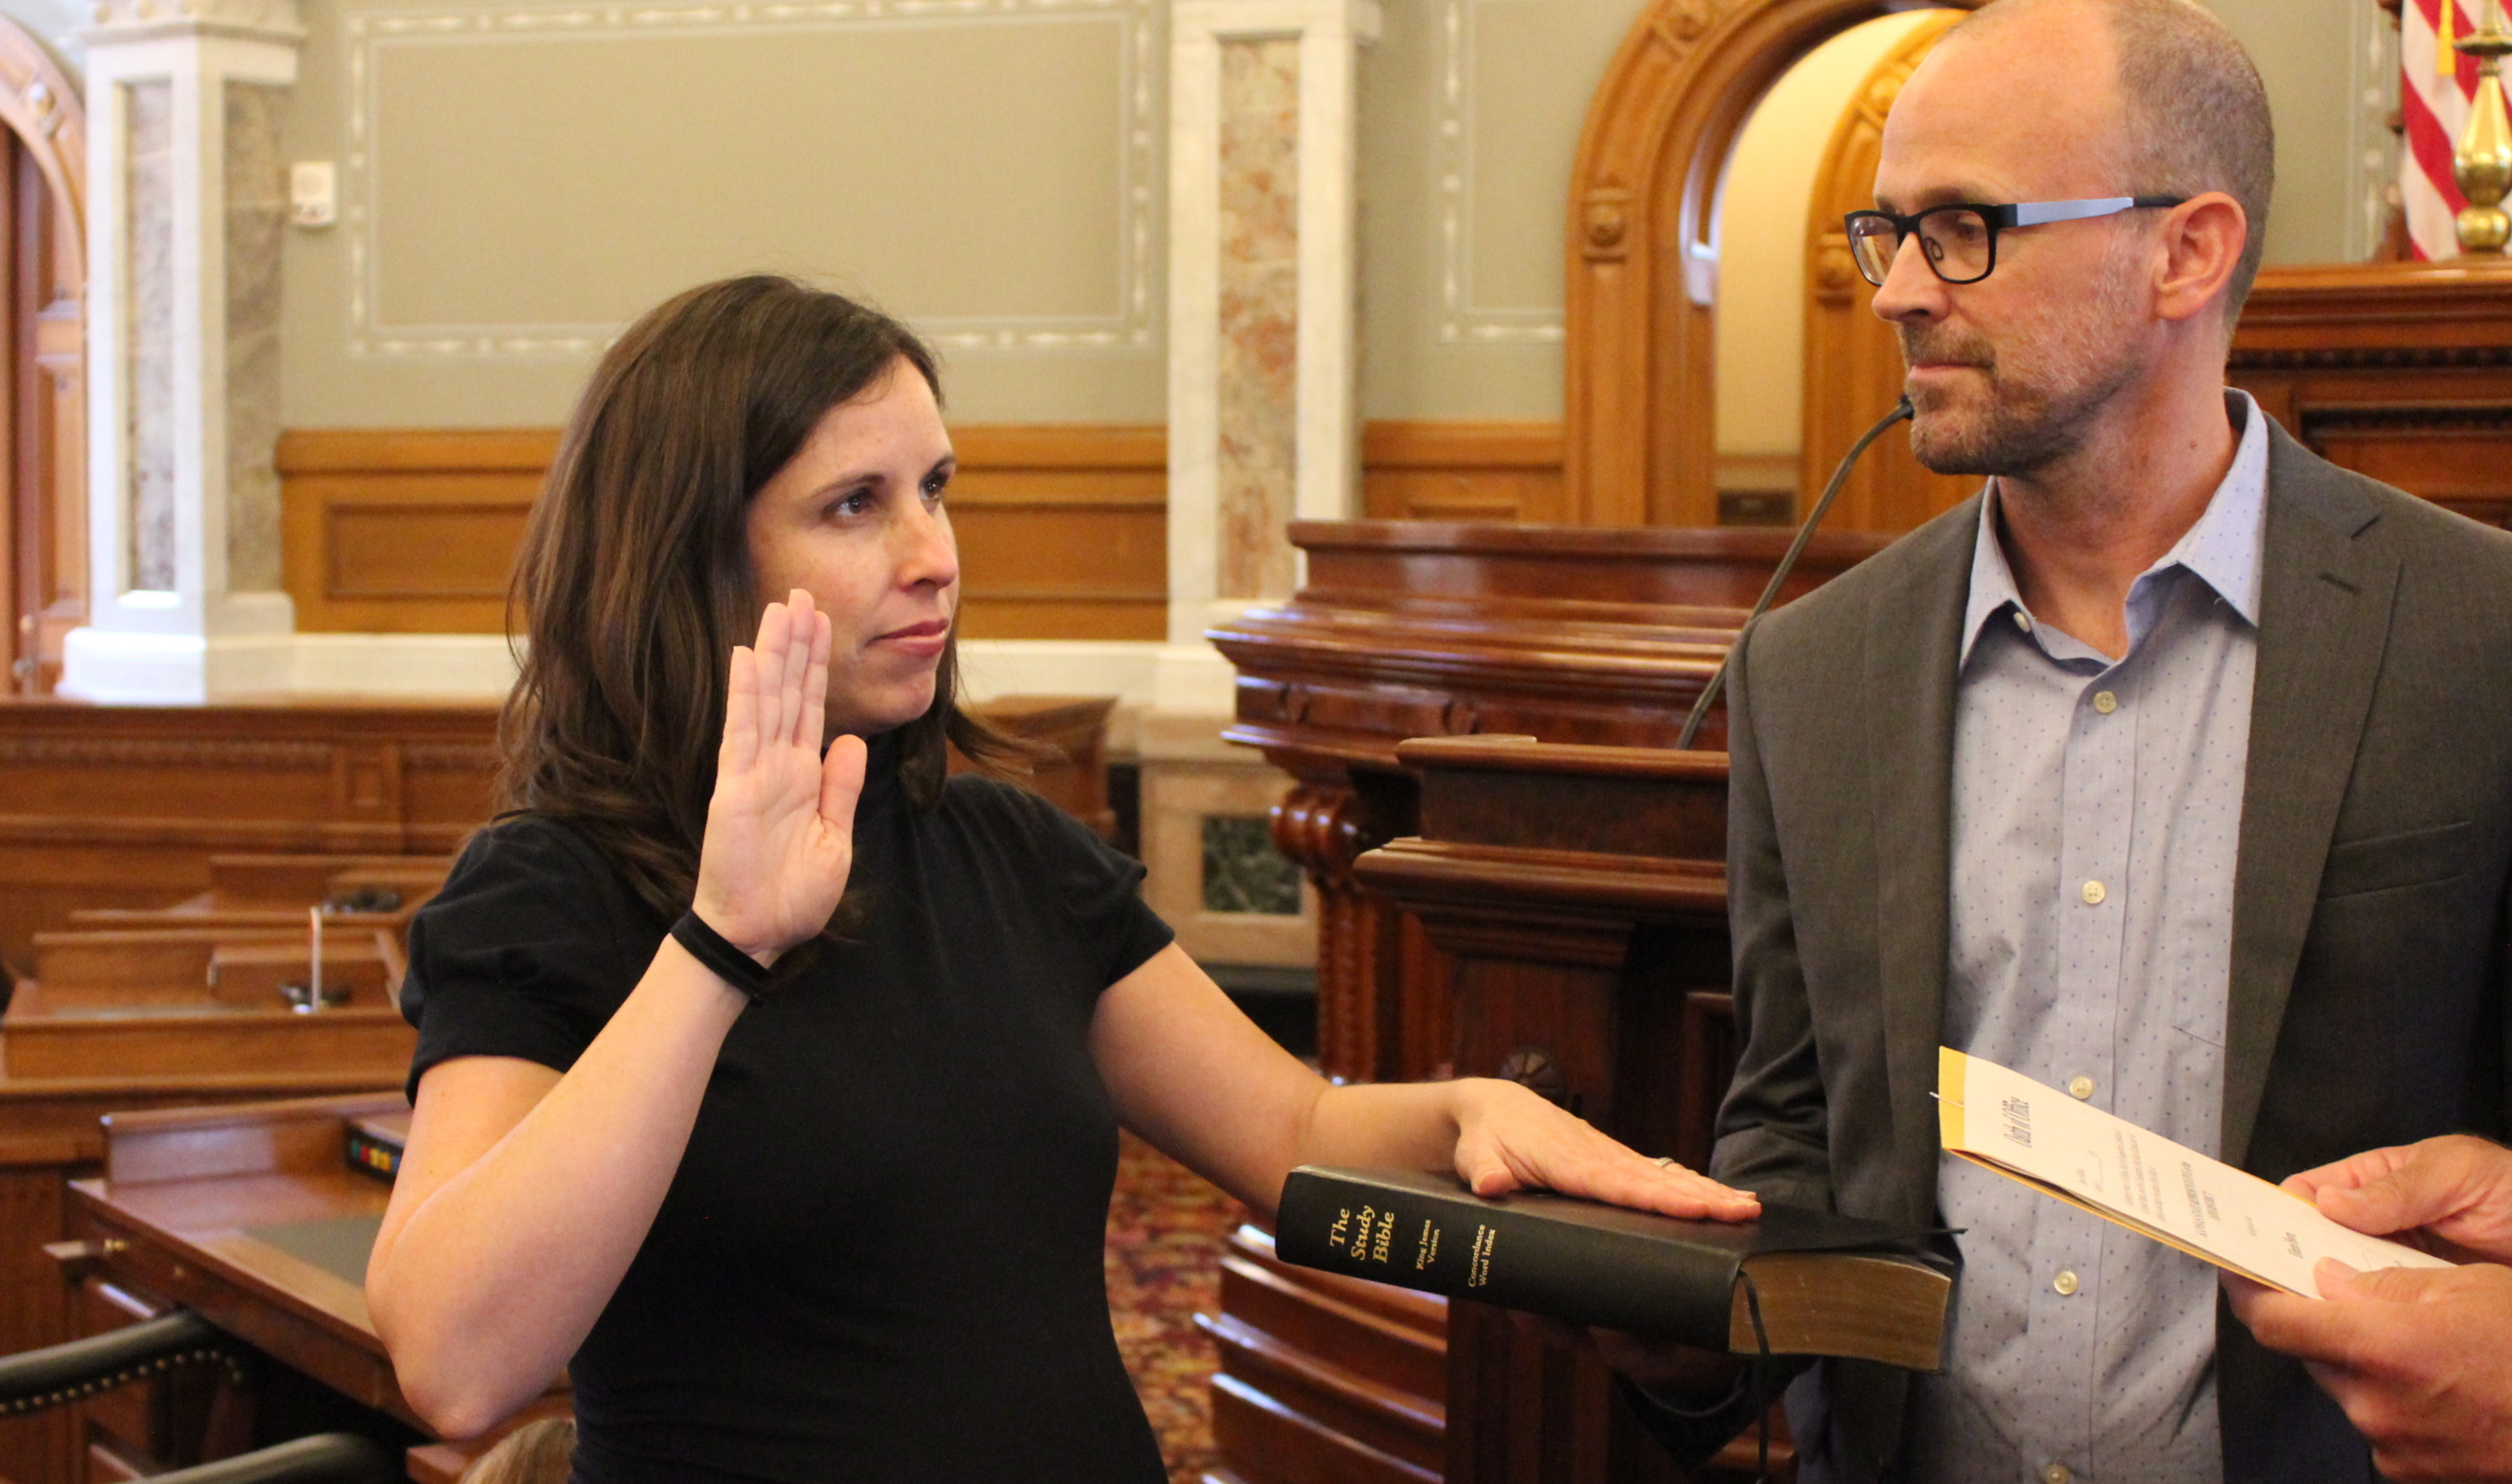 Representative Horn during the swearing-in ceremony. (Photo by Stephen Koranda)